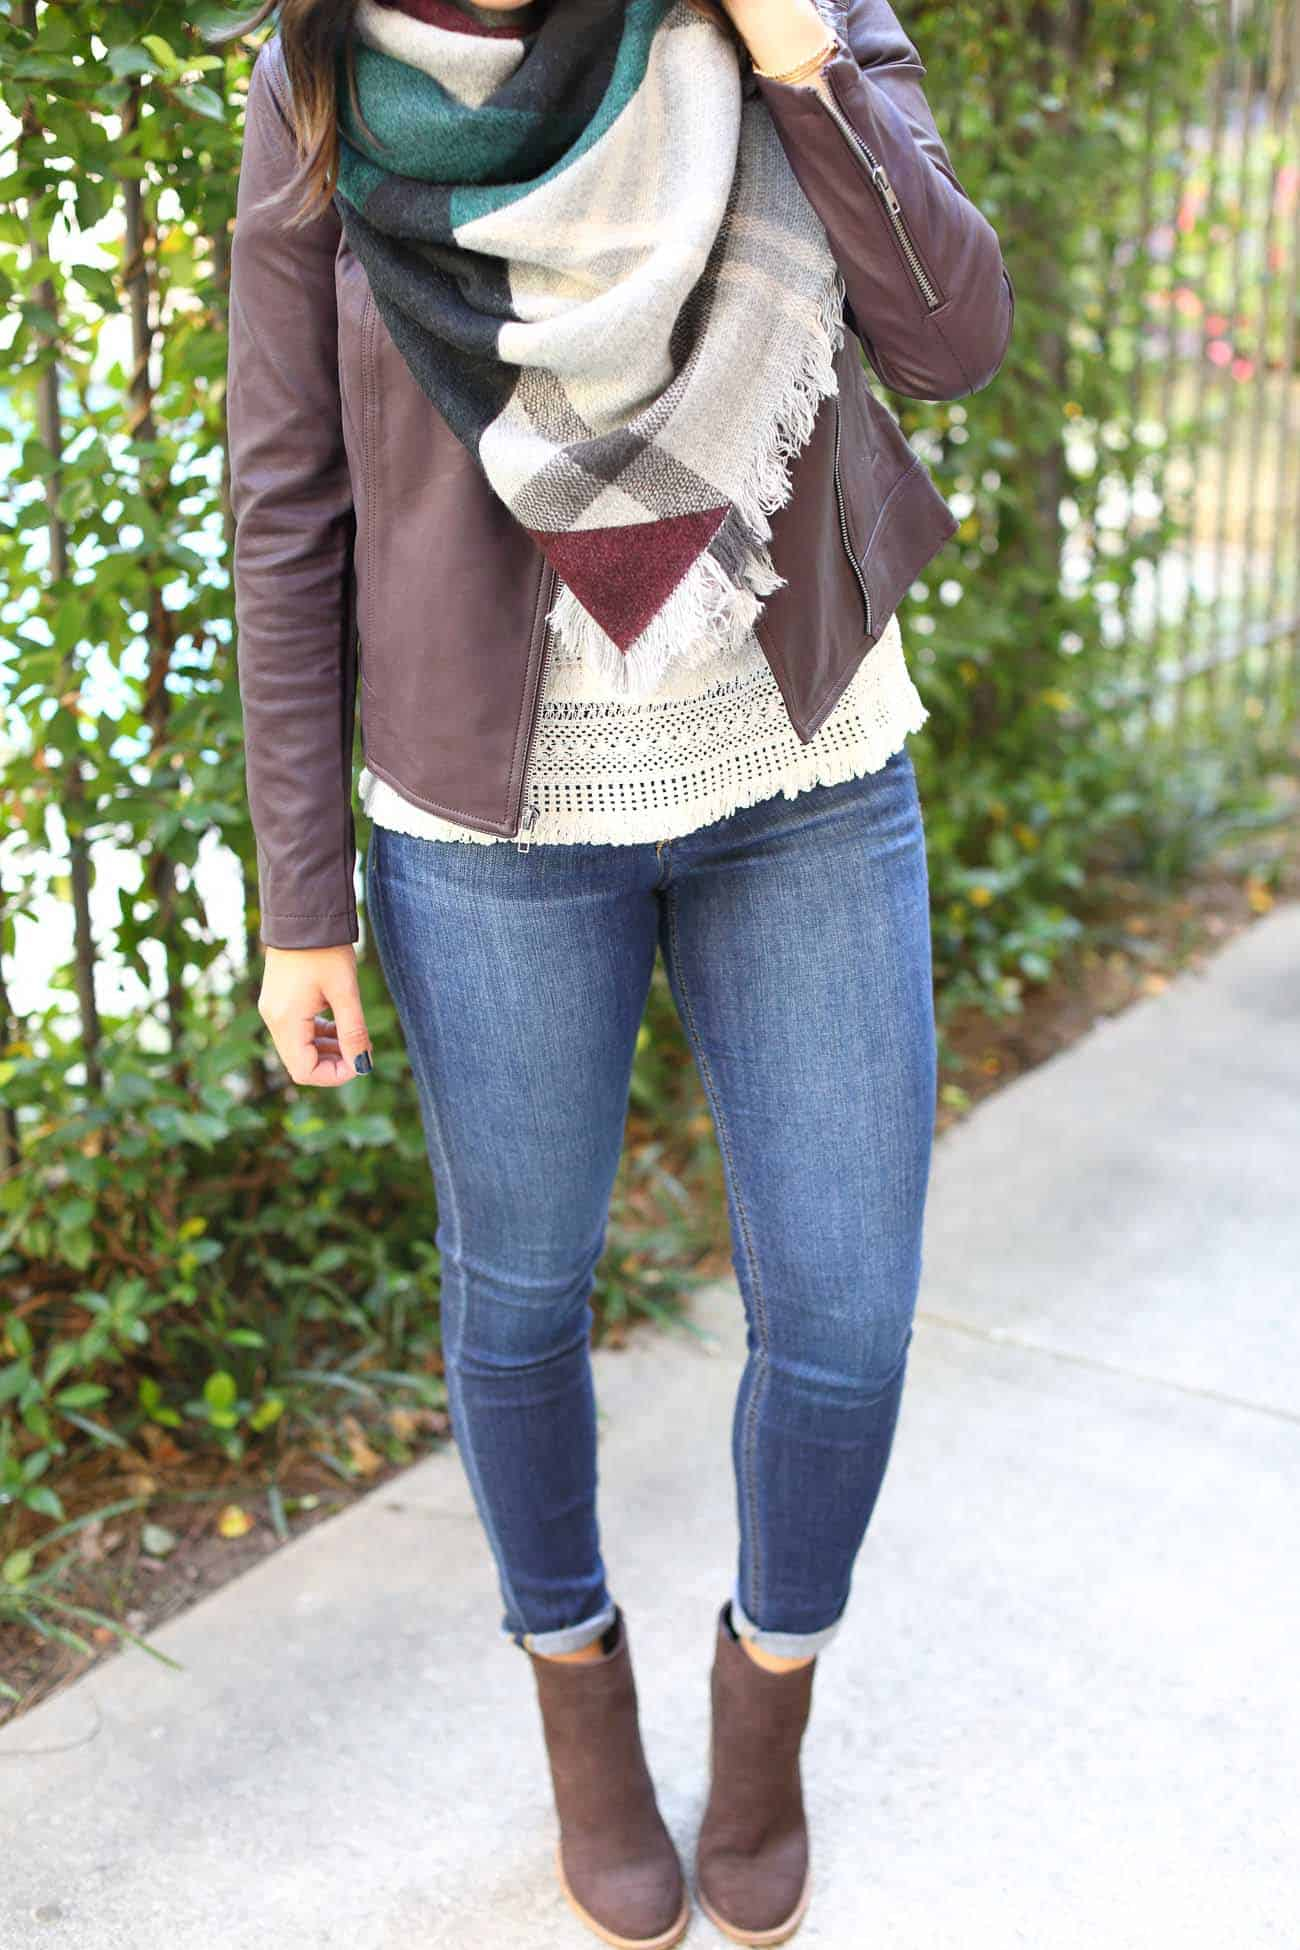 The Blanket Scarf - Styling A Blanket Scarf - My Style Vita